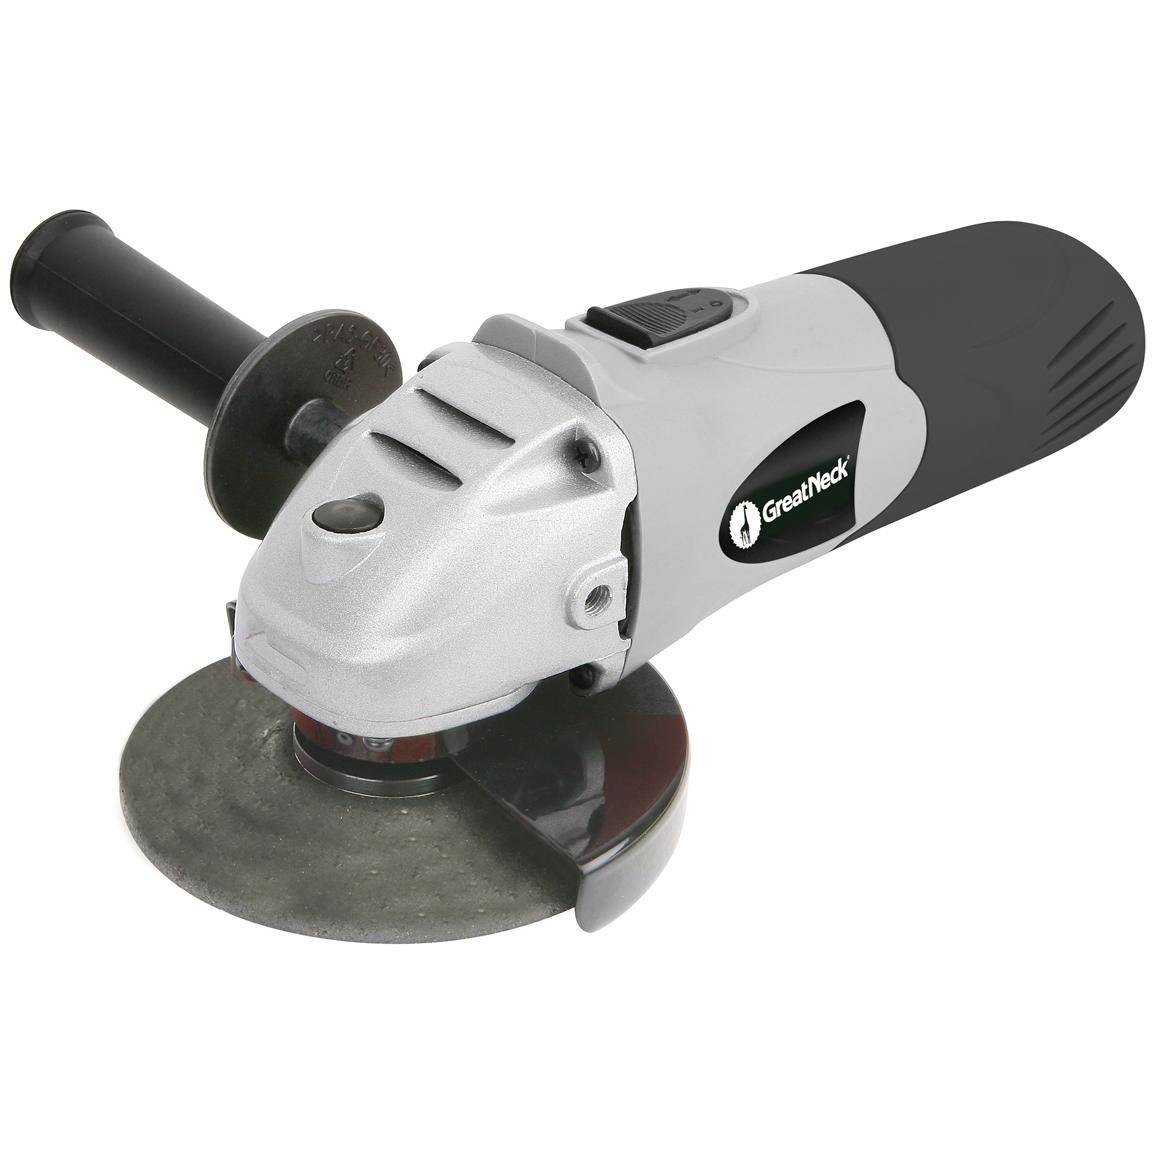 GreatNeck® 4 1/2 inch Angle Grinder